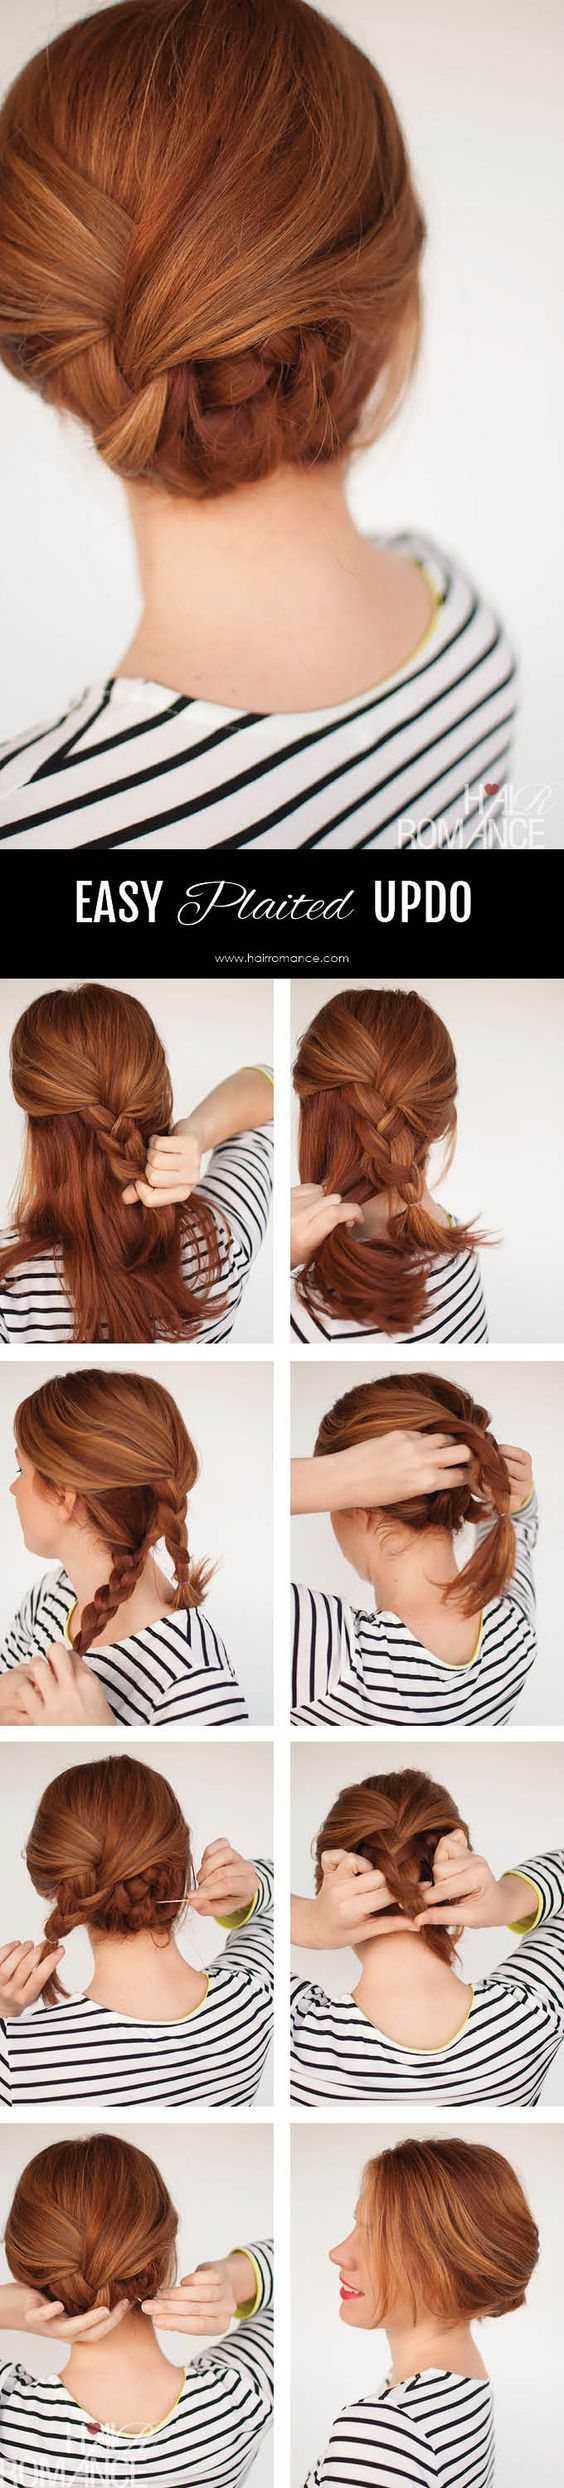 best gone to the salon images on pinterest hairstyle ideas